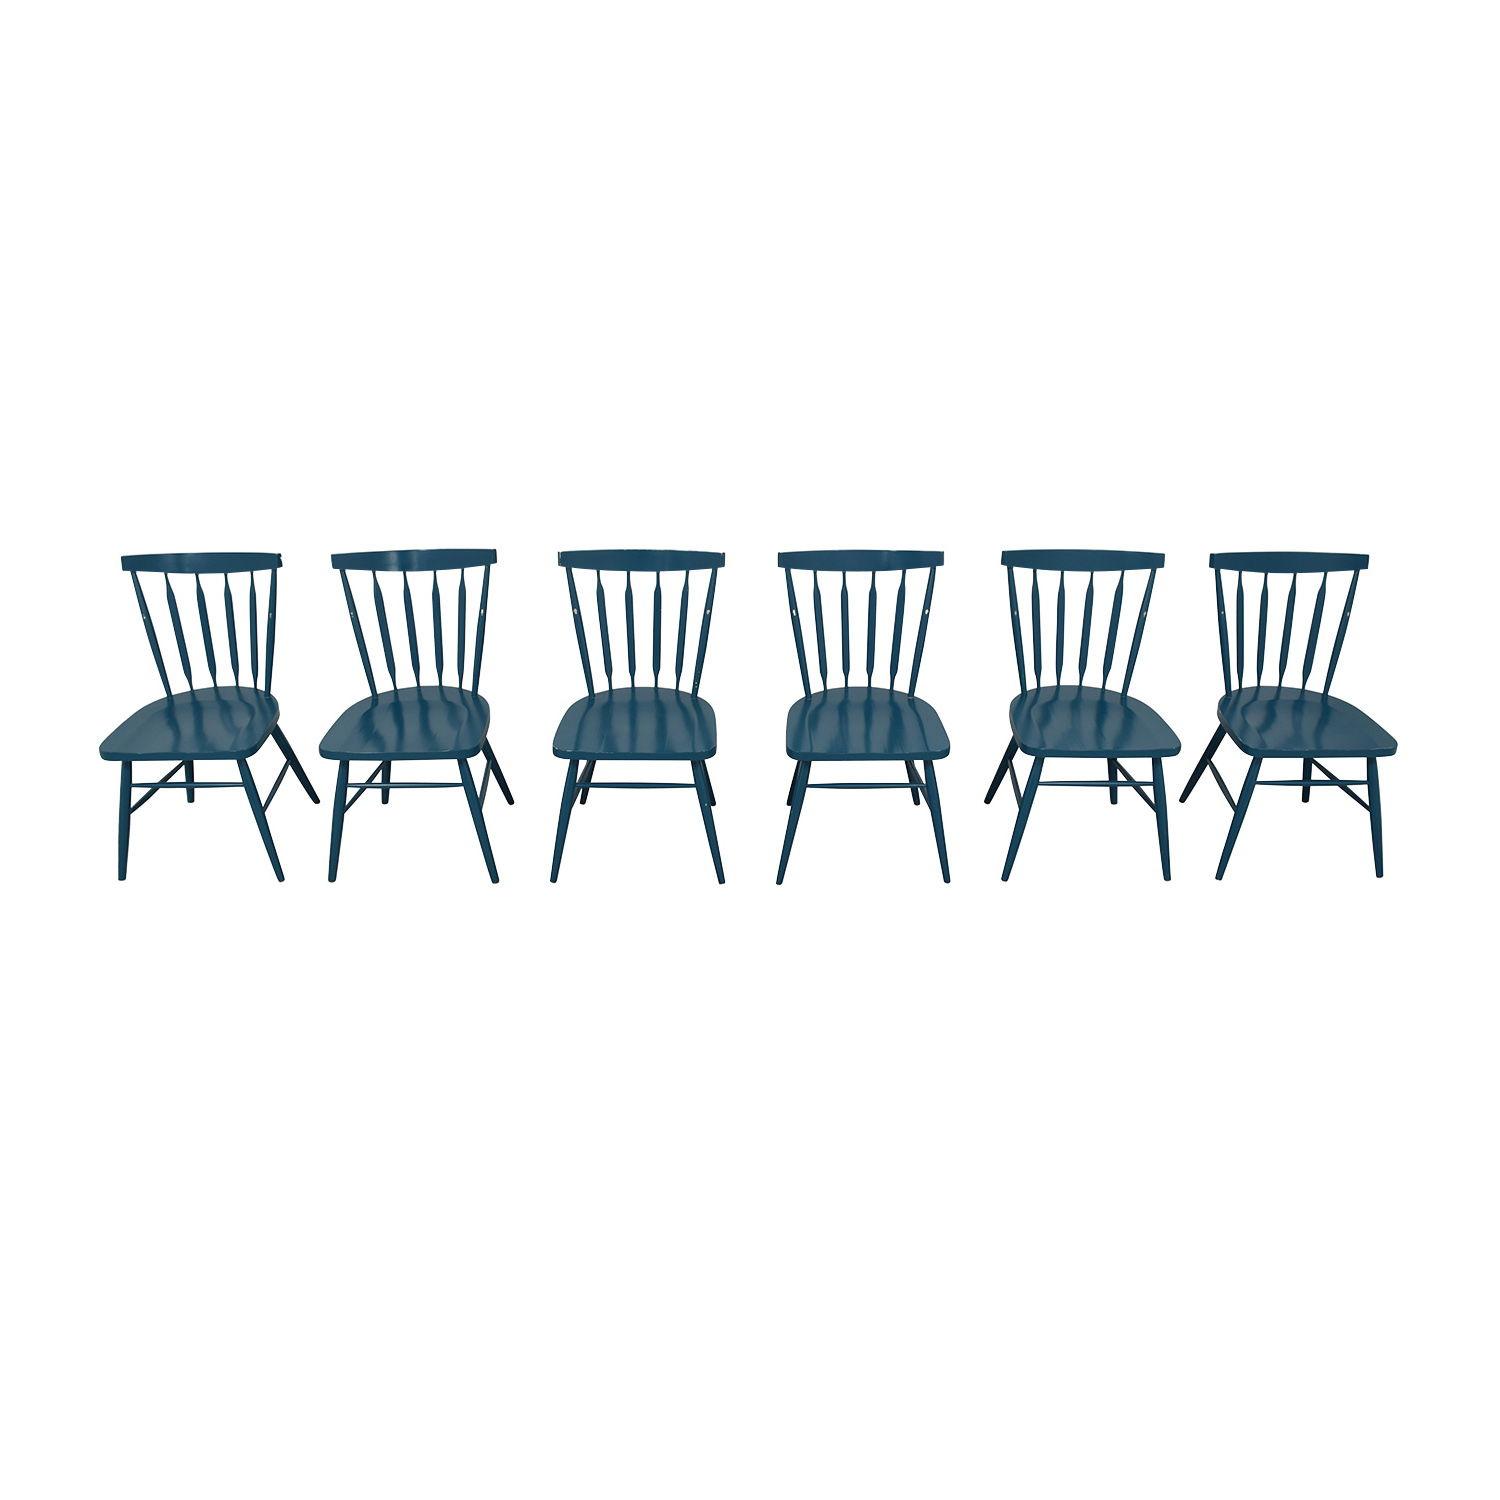 53% OFF - Crate & Barrel Crate & Barrel Kitchen Chairs / Chairs